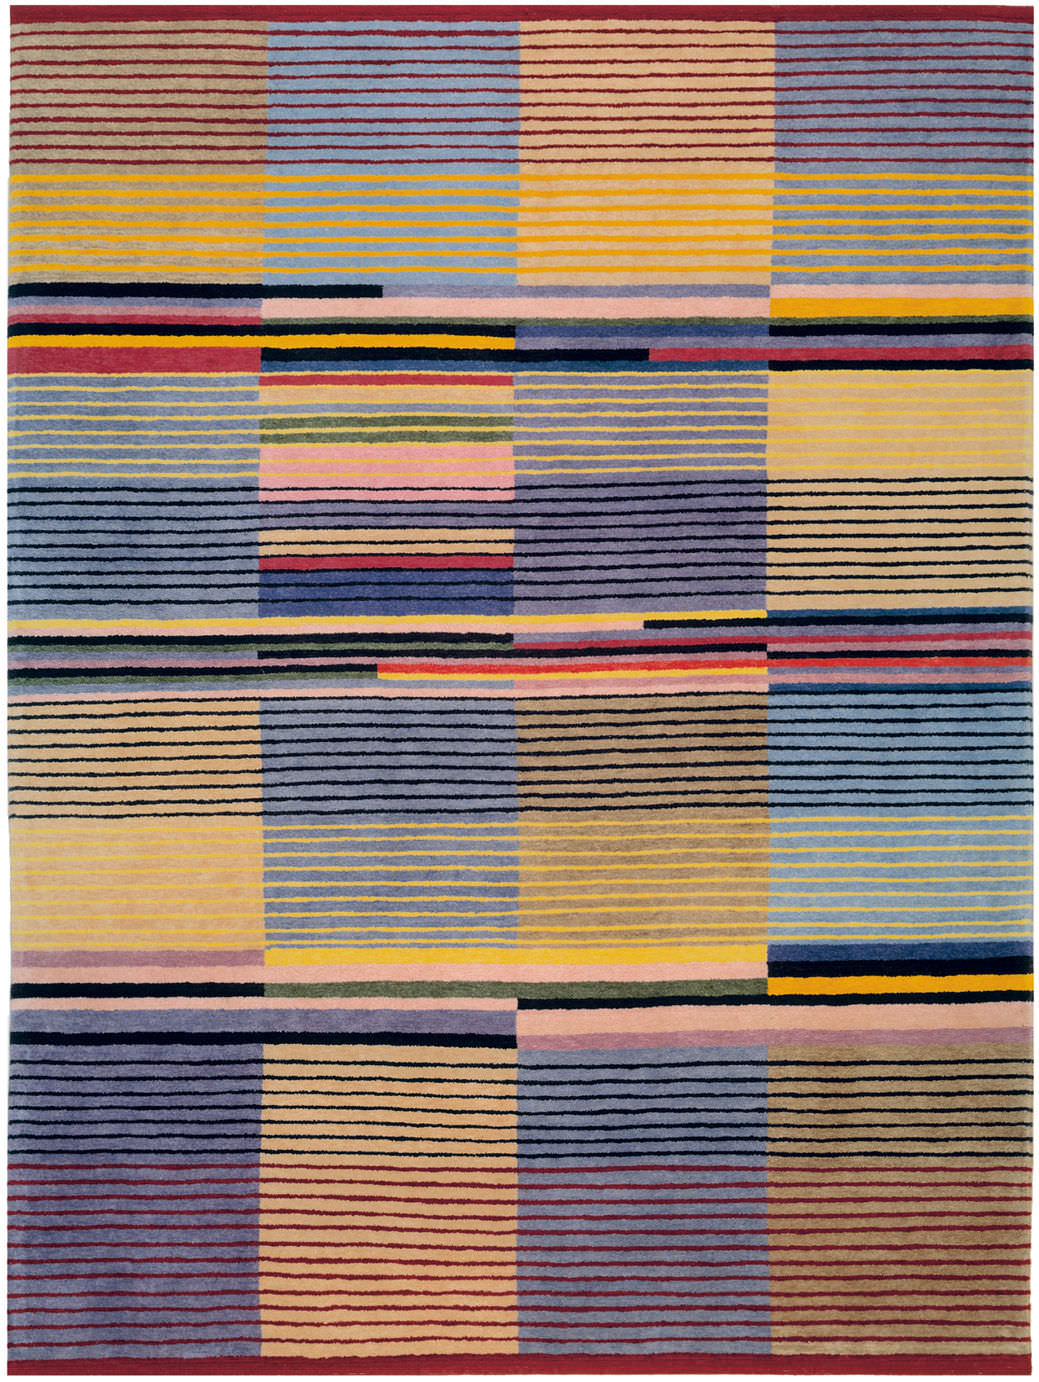 Gunta Stolzl and Anni Albers DOUBLE OR NOTHING